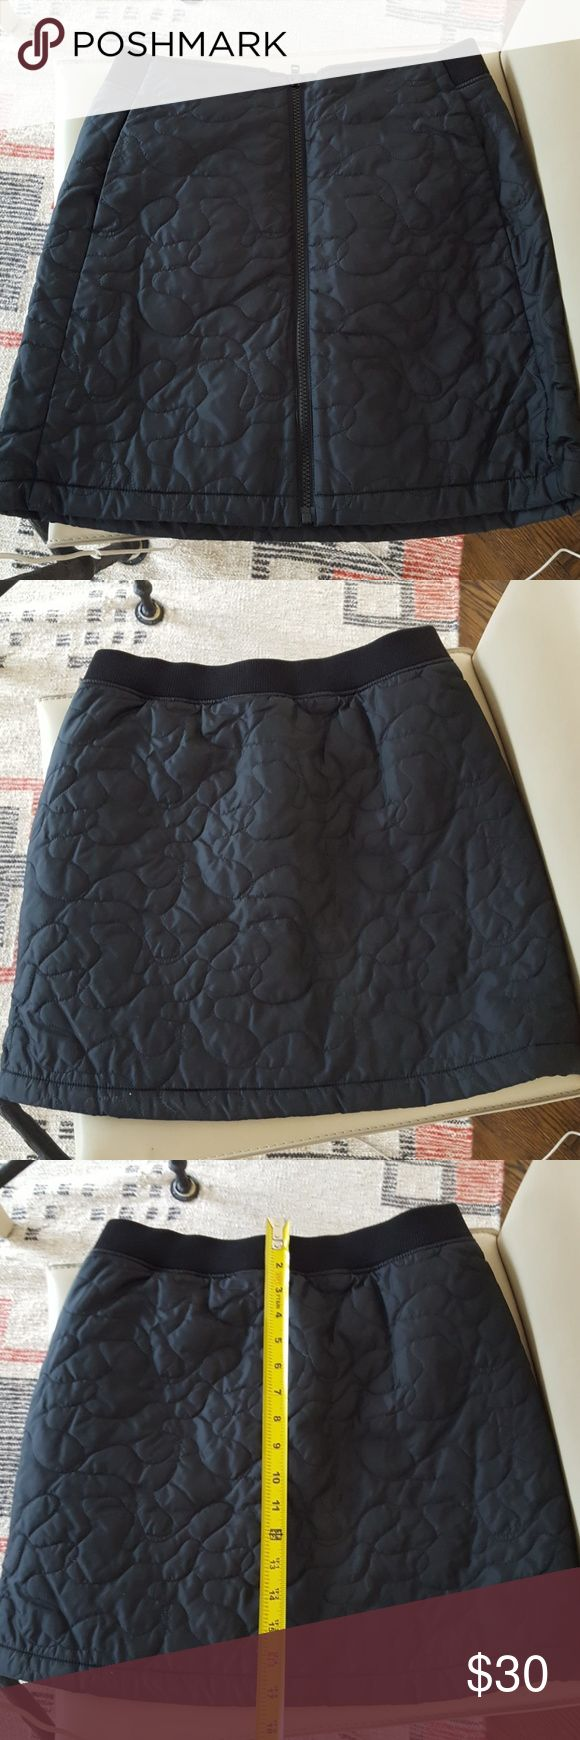 """Beautiful Uniqlo quilted skirt Never worn but took tags off. There is no size confirmation but I bought as a """"Small"""". Fleece lined, full zipper , two side pockets . Fits just above the knee Uniqlo Skirts Midi"""